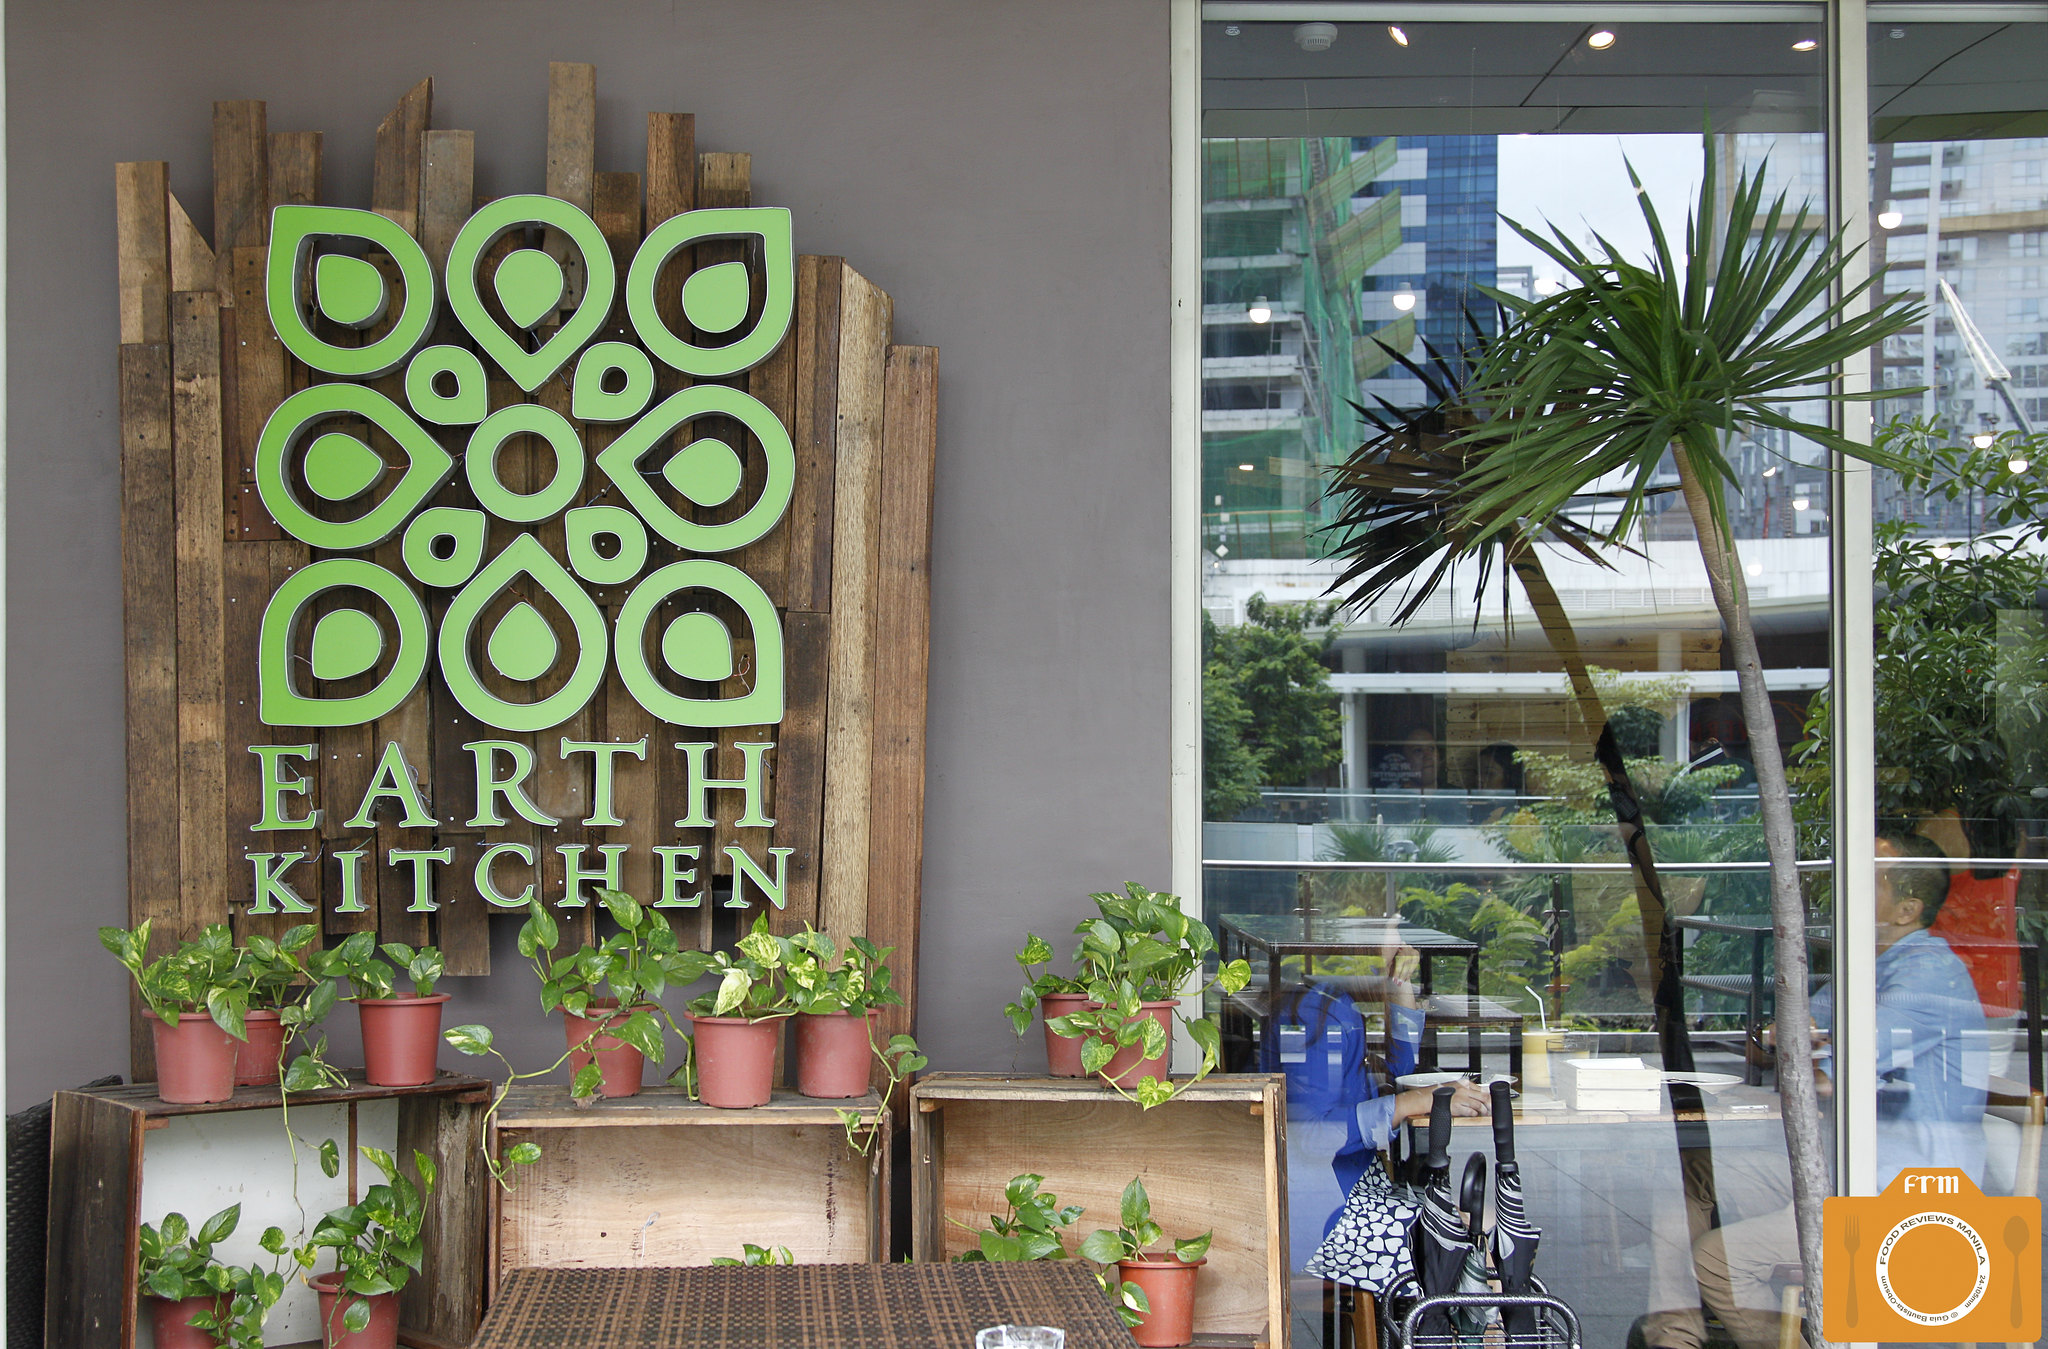 Earth Kitchen logo sign